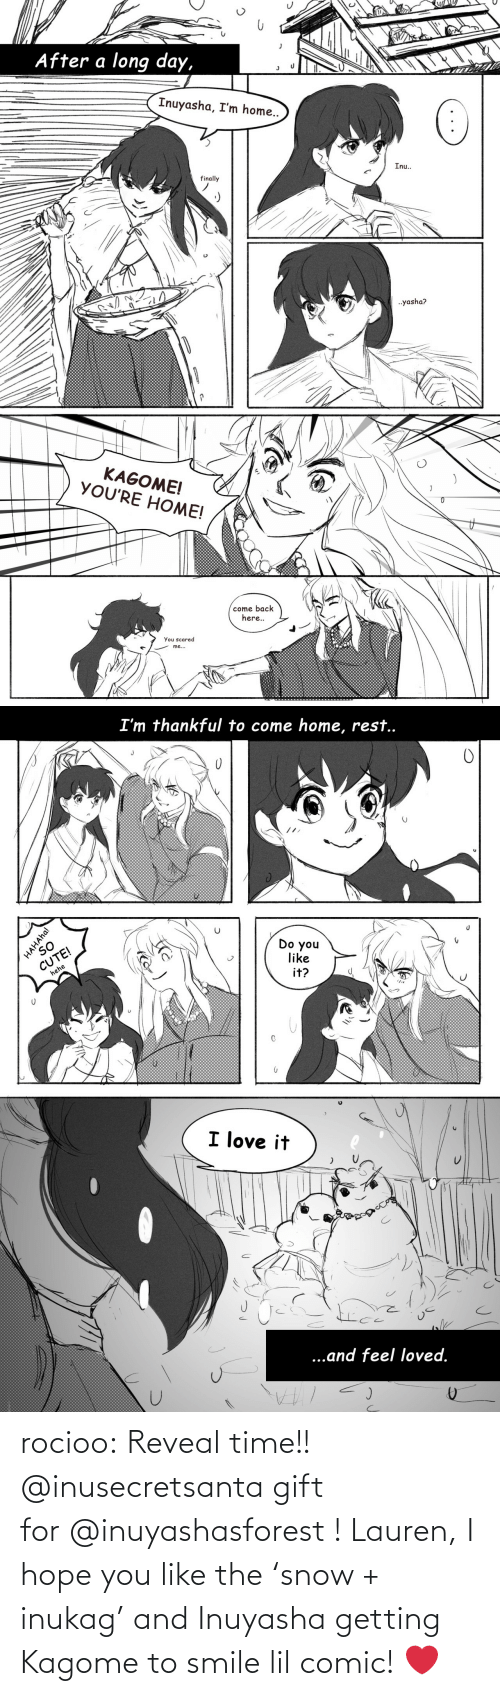 kagome: rocioo: Reveal time!! @inusecretsanta gift for @inuyashasforest ! Lauren, I hope you like the 'snow + inukag' and Inuyasha getting Kagome to smile lil comic! ❤